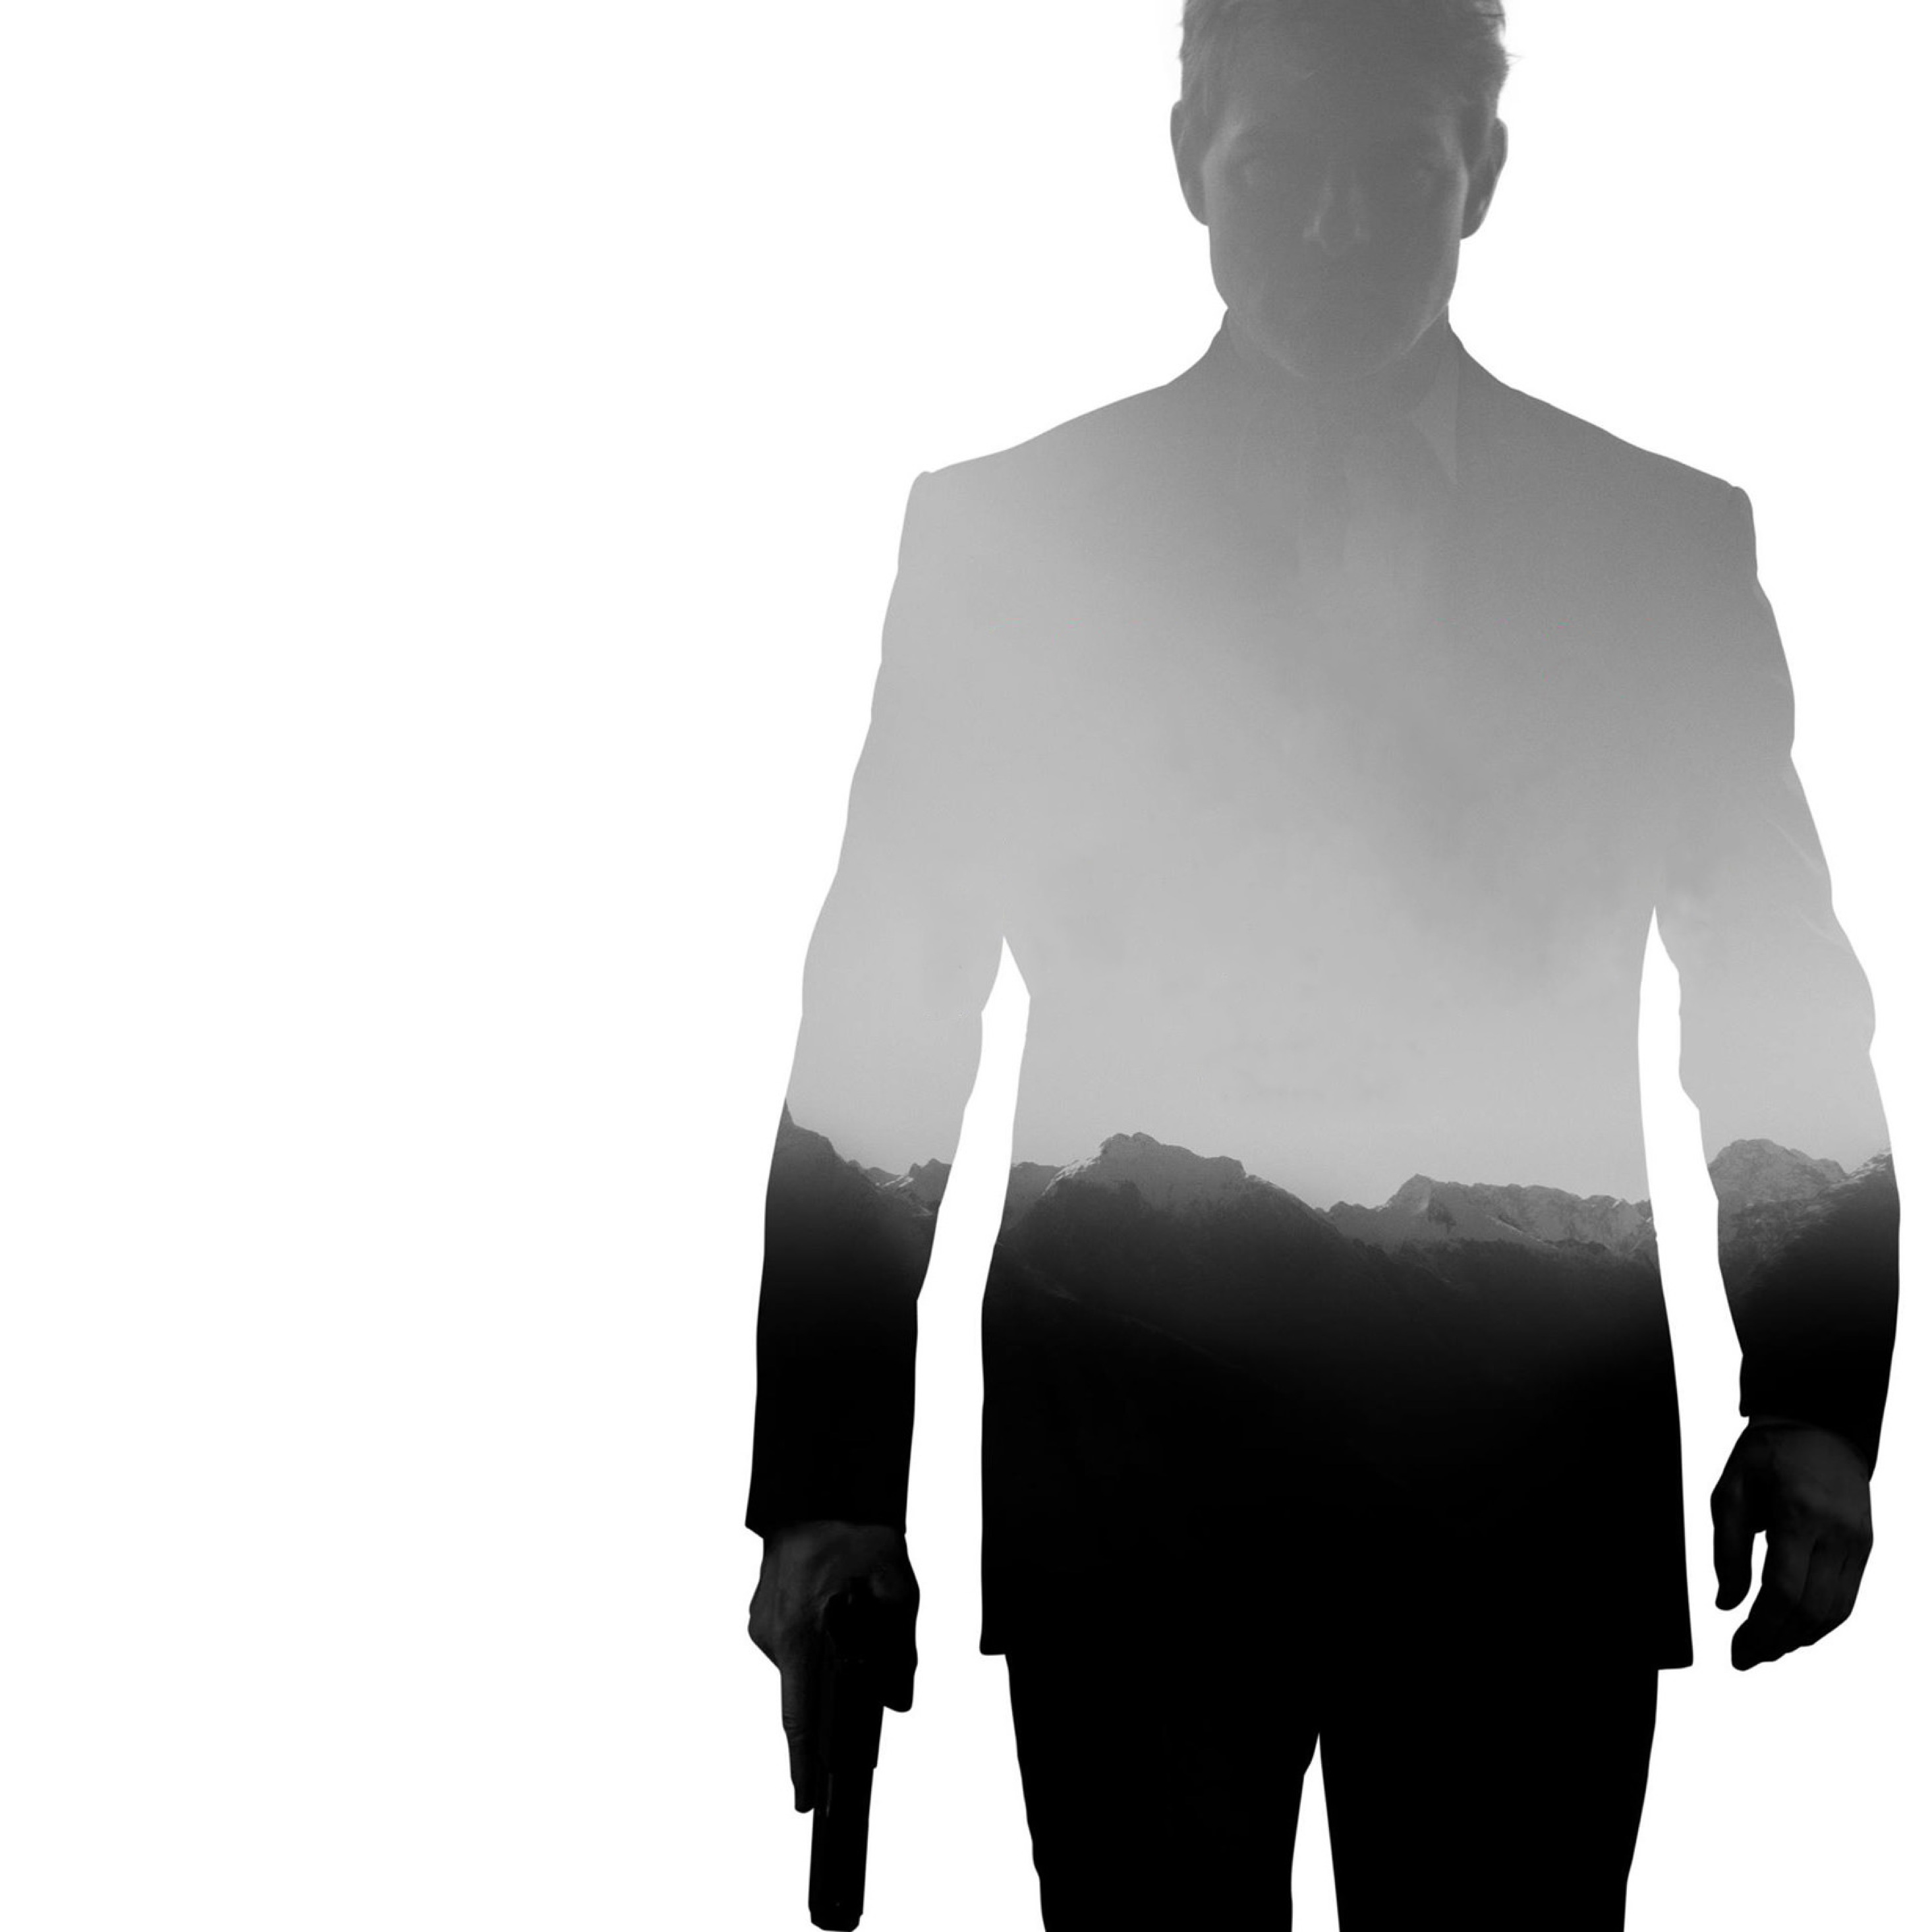 mission impossible 6 fallout poster full hd 2k wallpaper